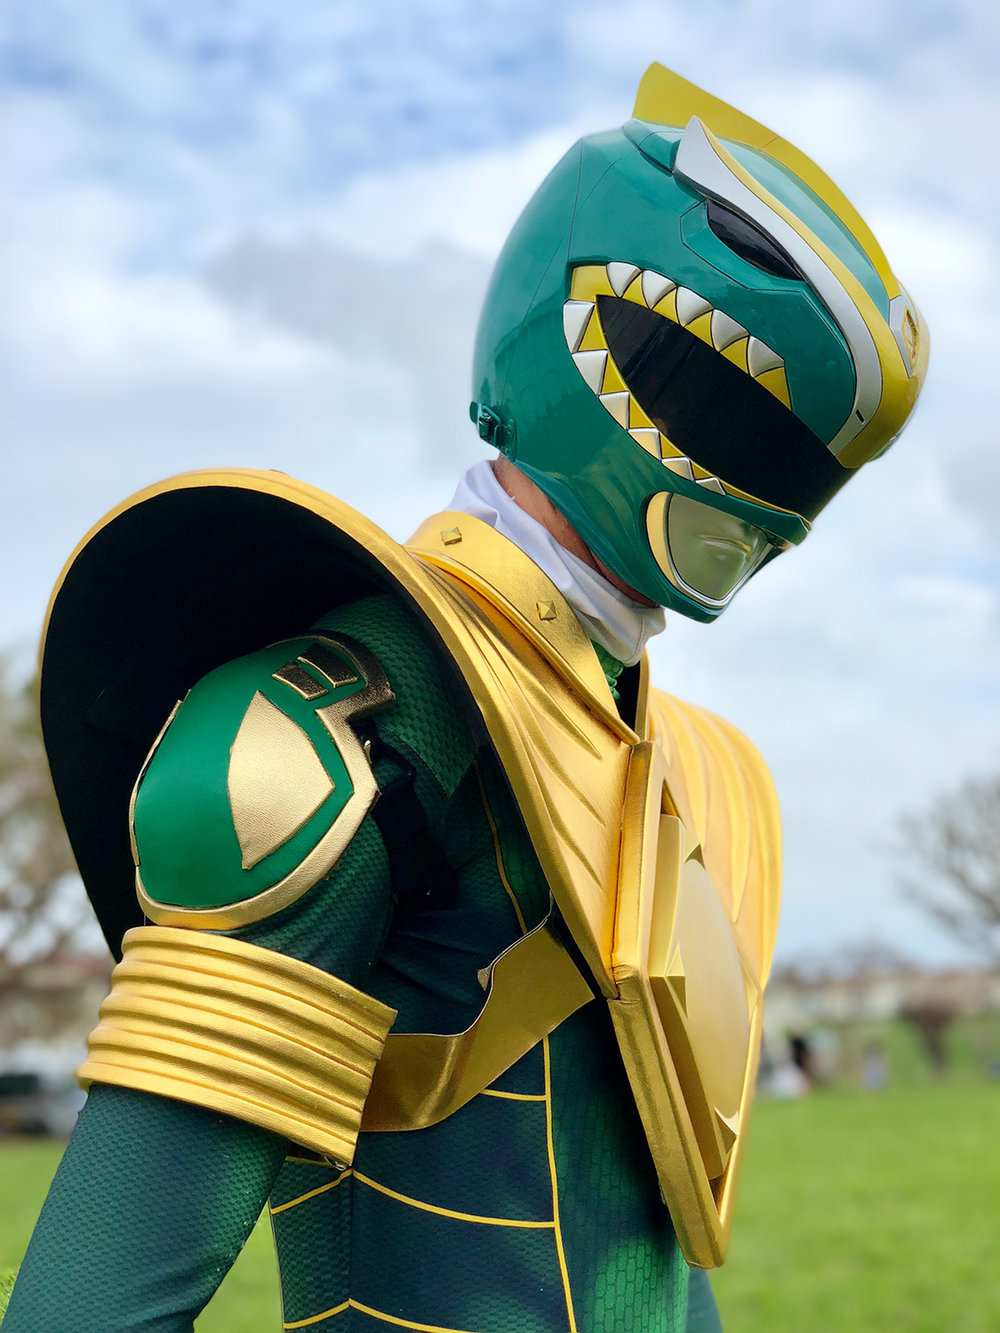 Power Ranger #ShotOniPhone #ShotOniPhoneX using portrait mode.